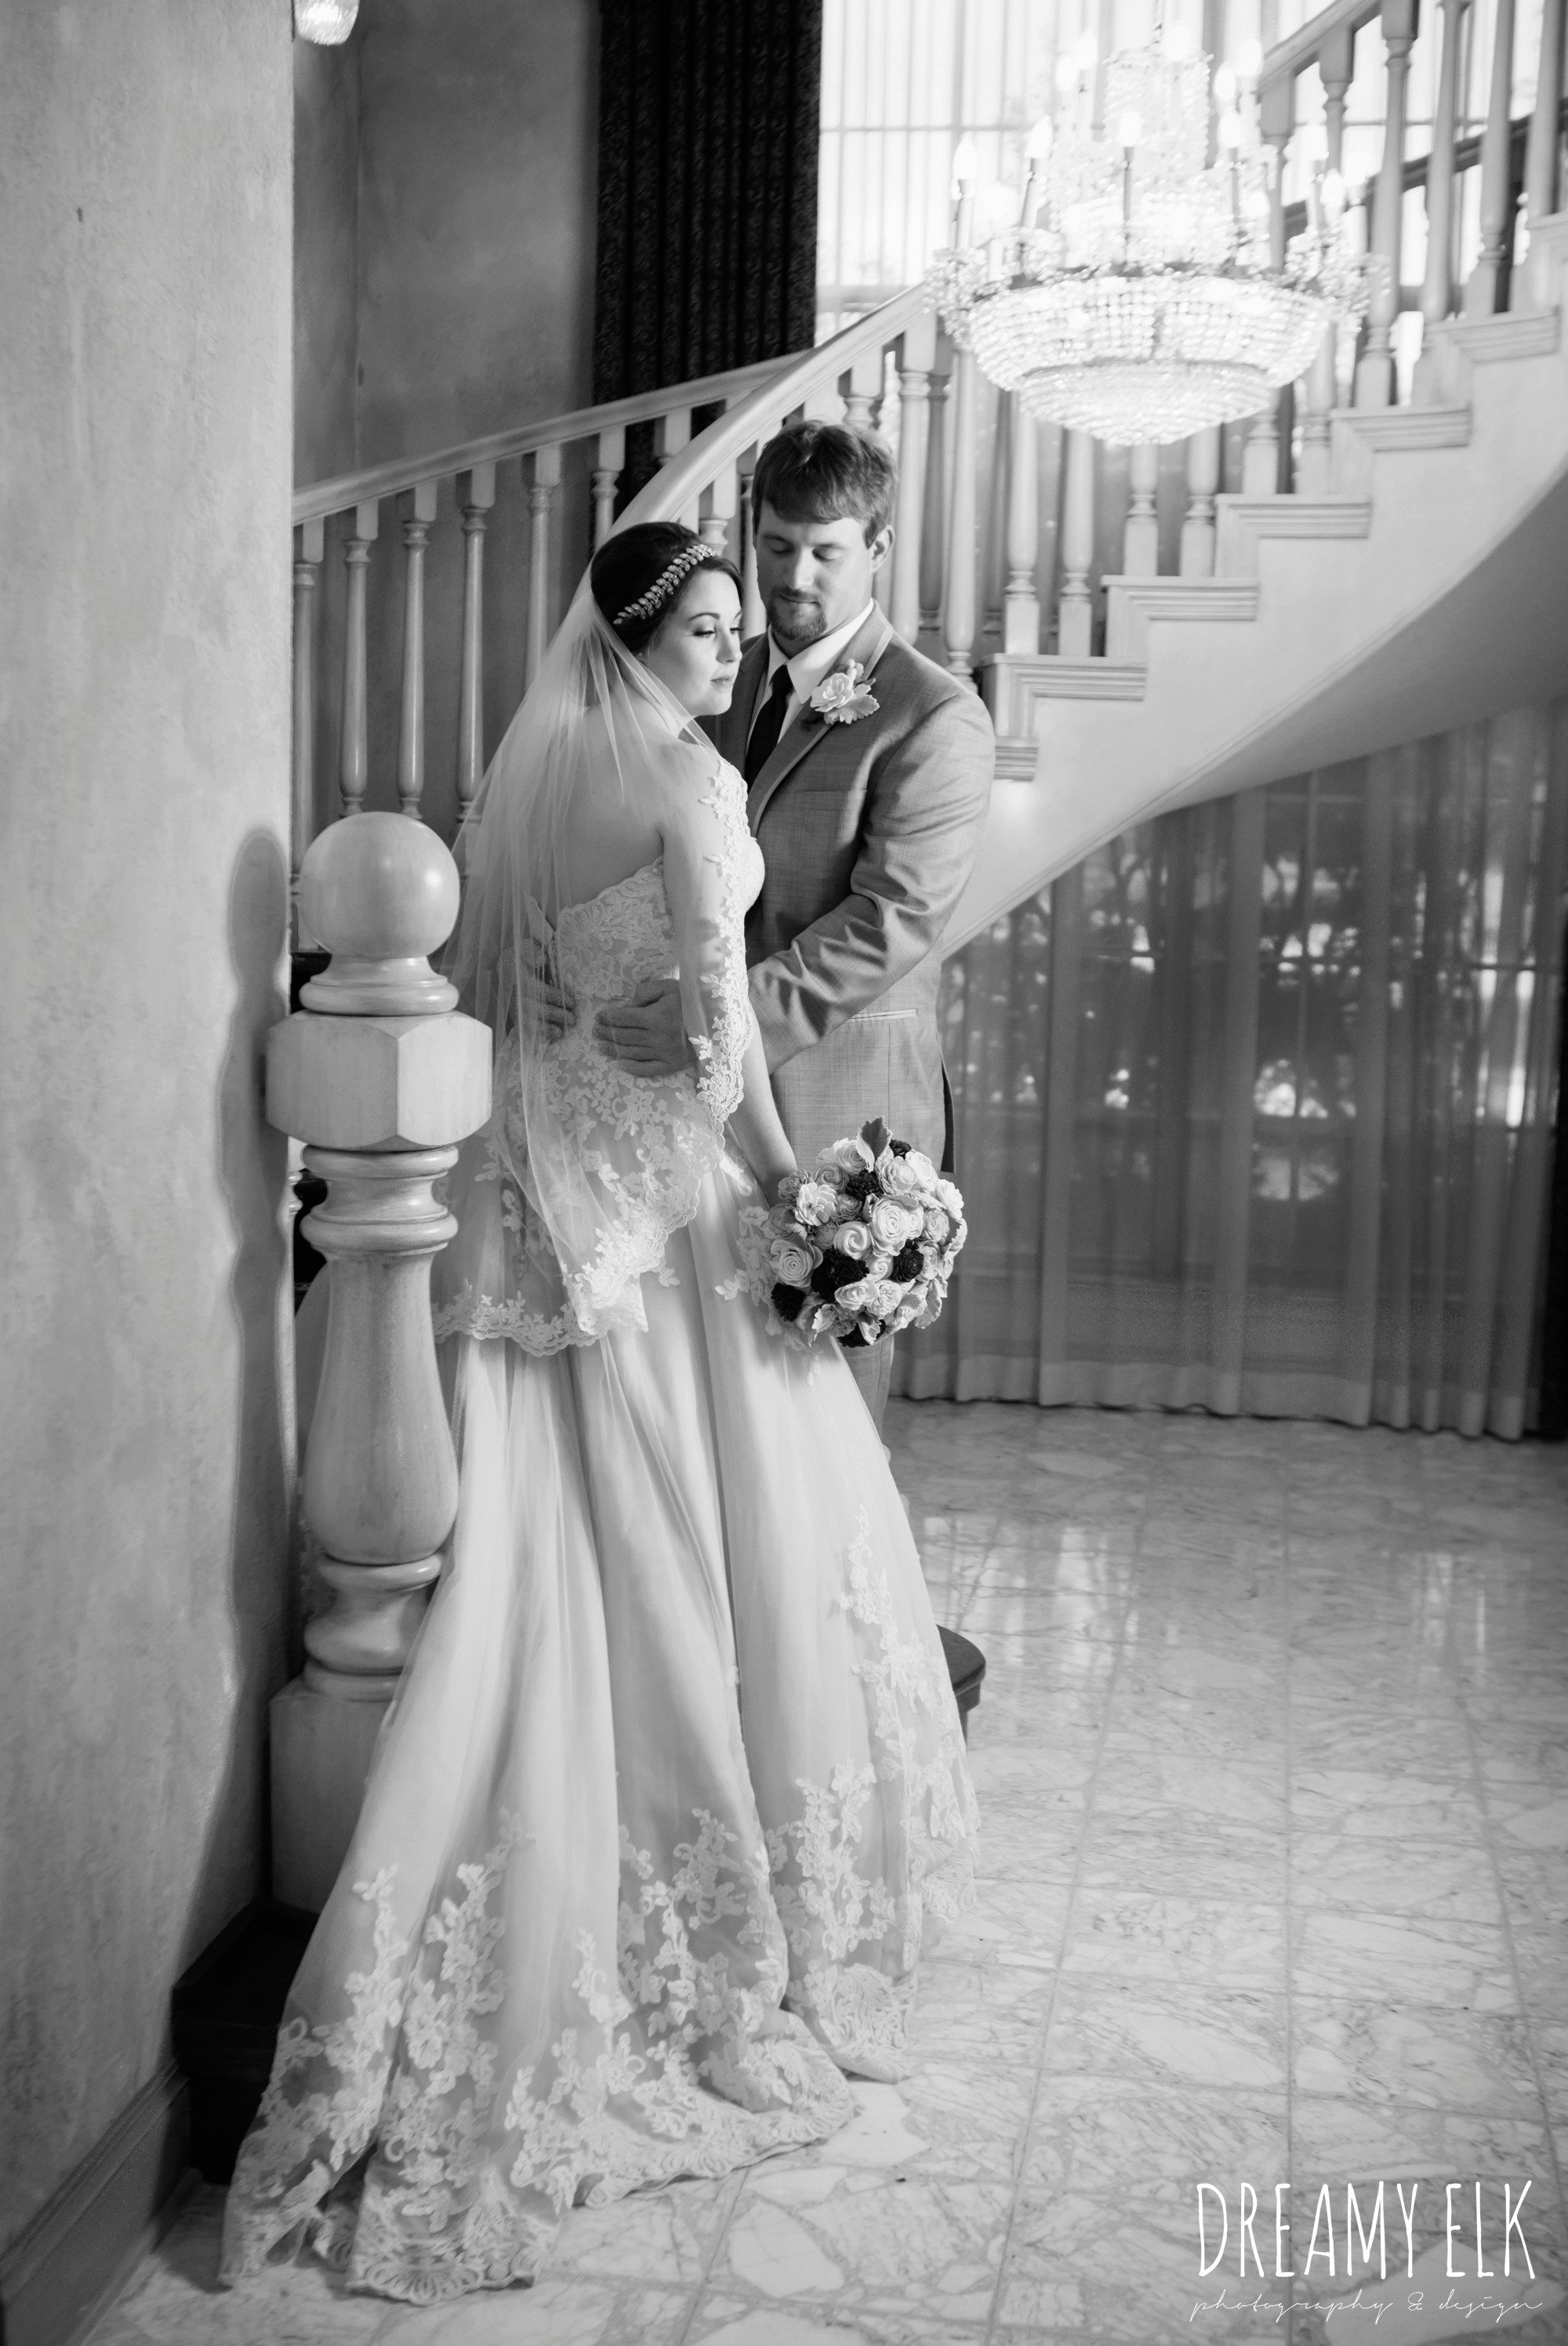 bride and groom on staircase, bride, sweetheart lace ballgown wedding dress, oyester underlay, lace trimmed veil, rhinestone headpiece, groom, men's wearhouse gray tux with maroon vest and tie, september wedding photo, ashelynn manor, magnolia, texas, austin texas wedding photographer {dreamy elk photography and design}